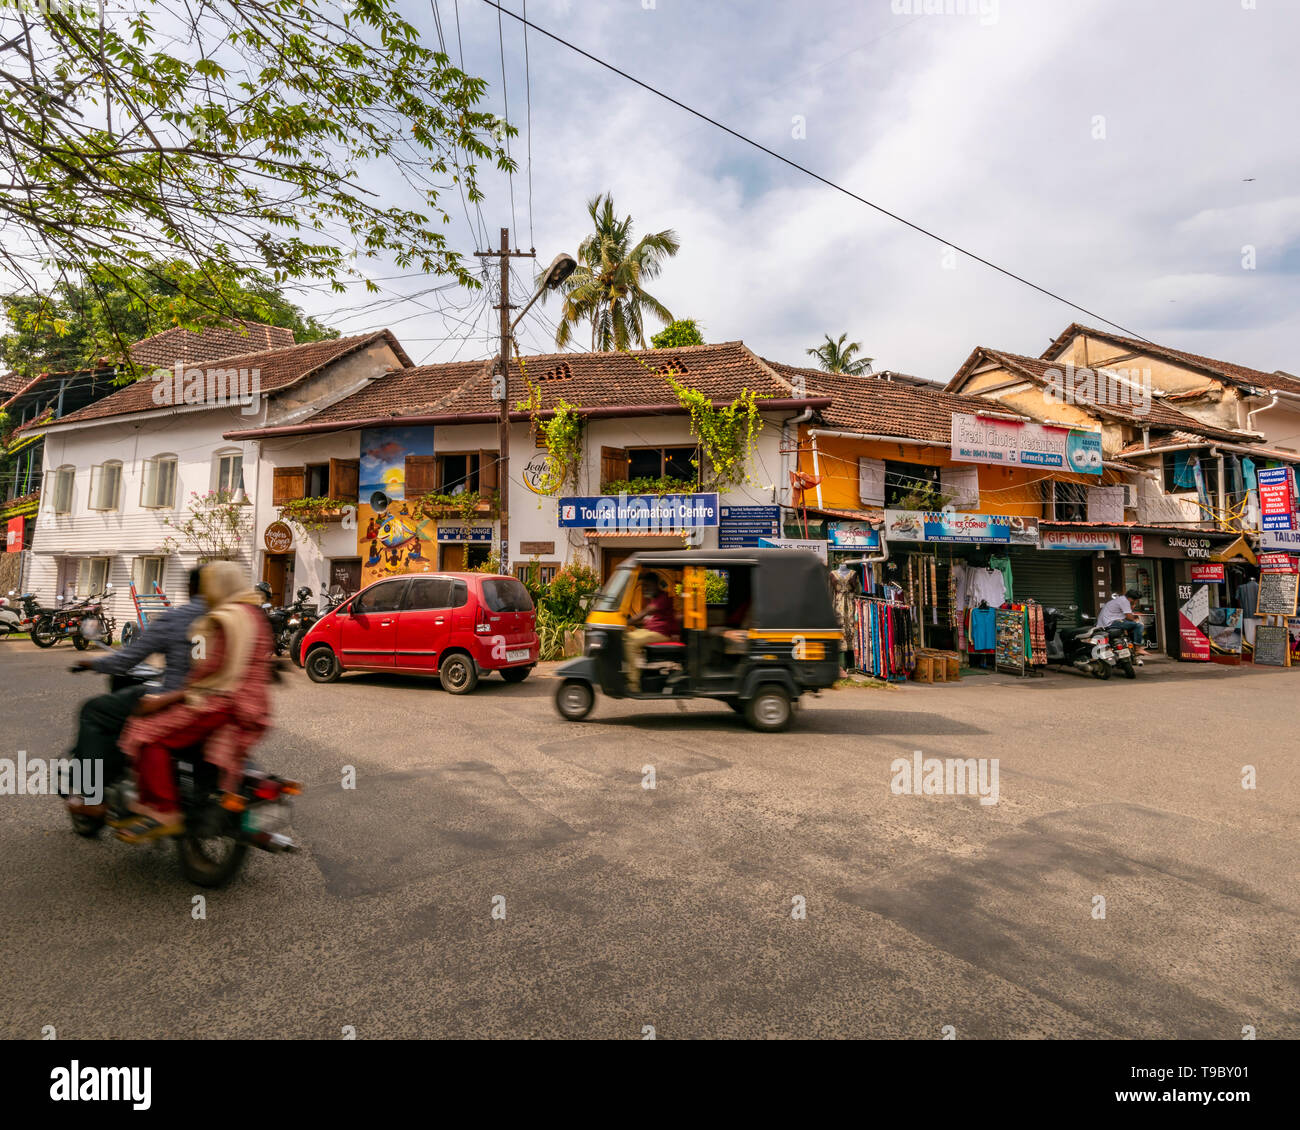 Horizontal streetview in Fort Kochi, India. - Stock Image